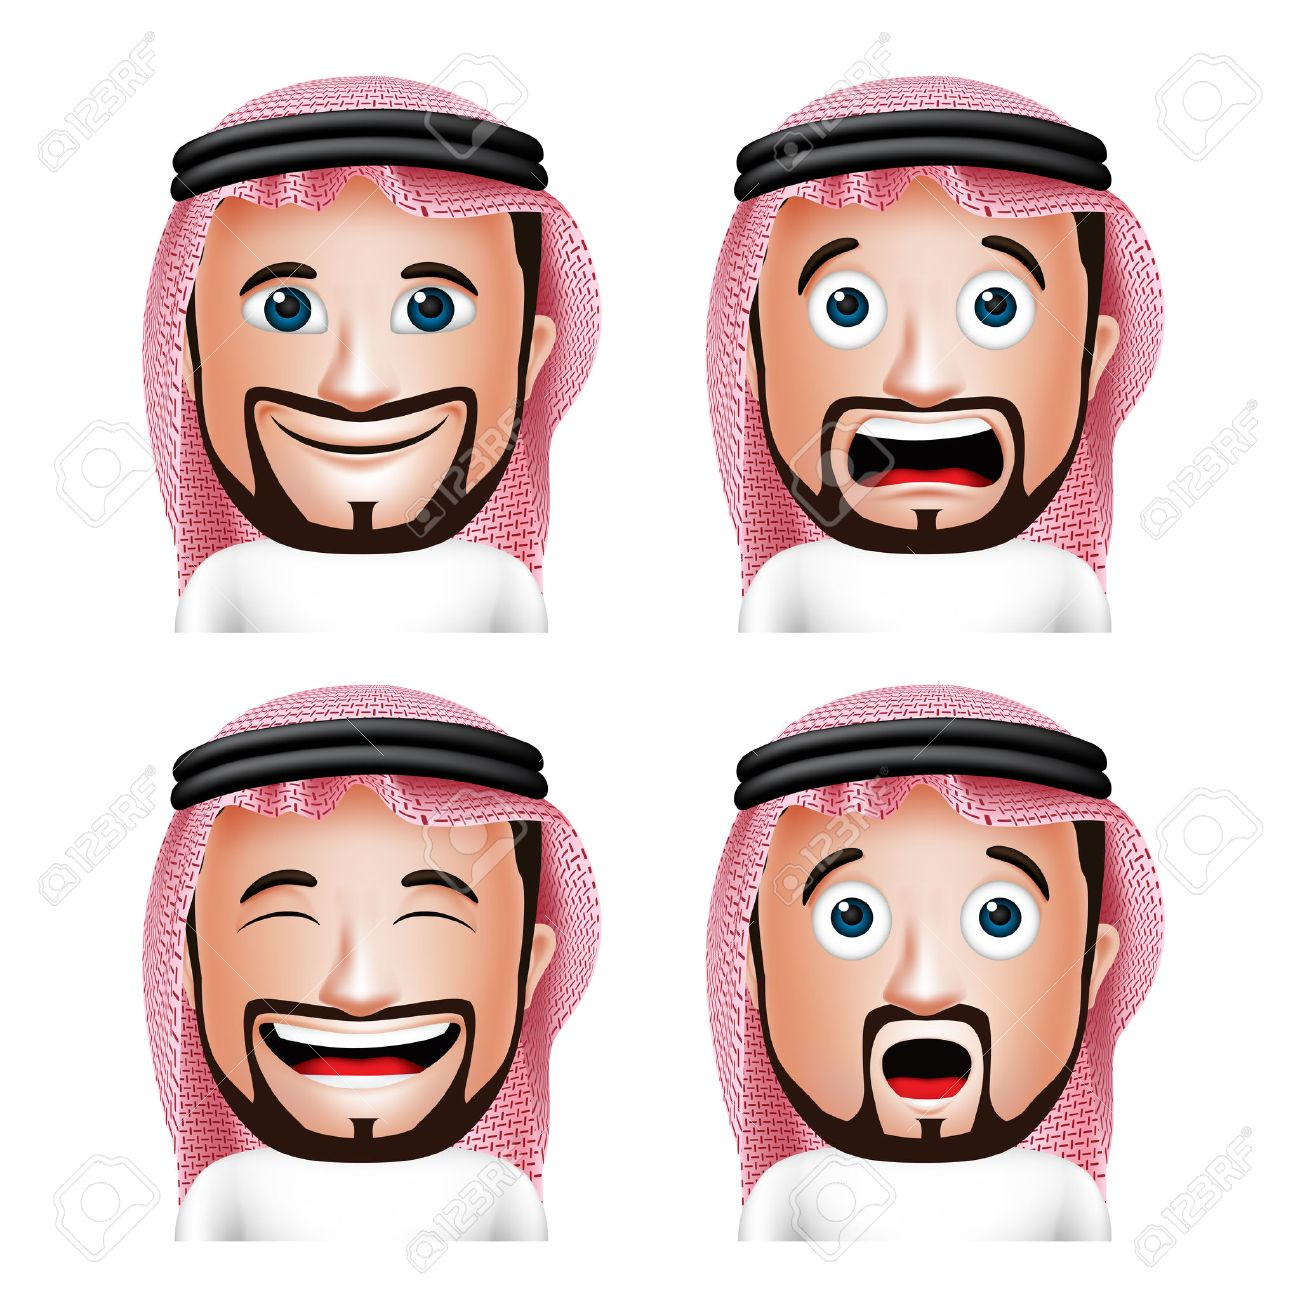 Set of 3D Realistic Saudi Arab Man Head with Different Facial Expressions Wearing Thobe Avatar Isolated in White Background. Editable Vector Illustration - 43875172